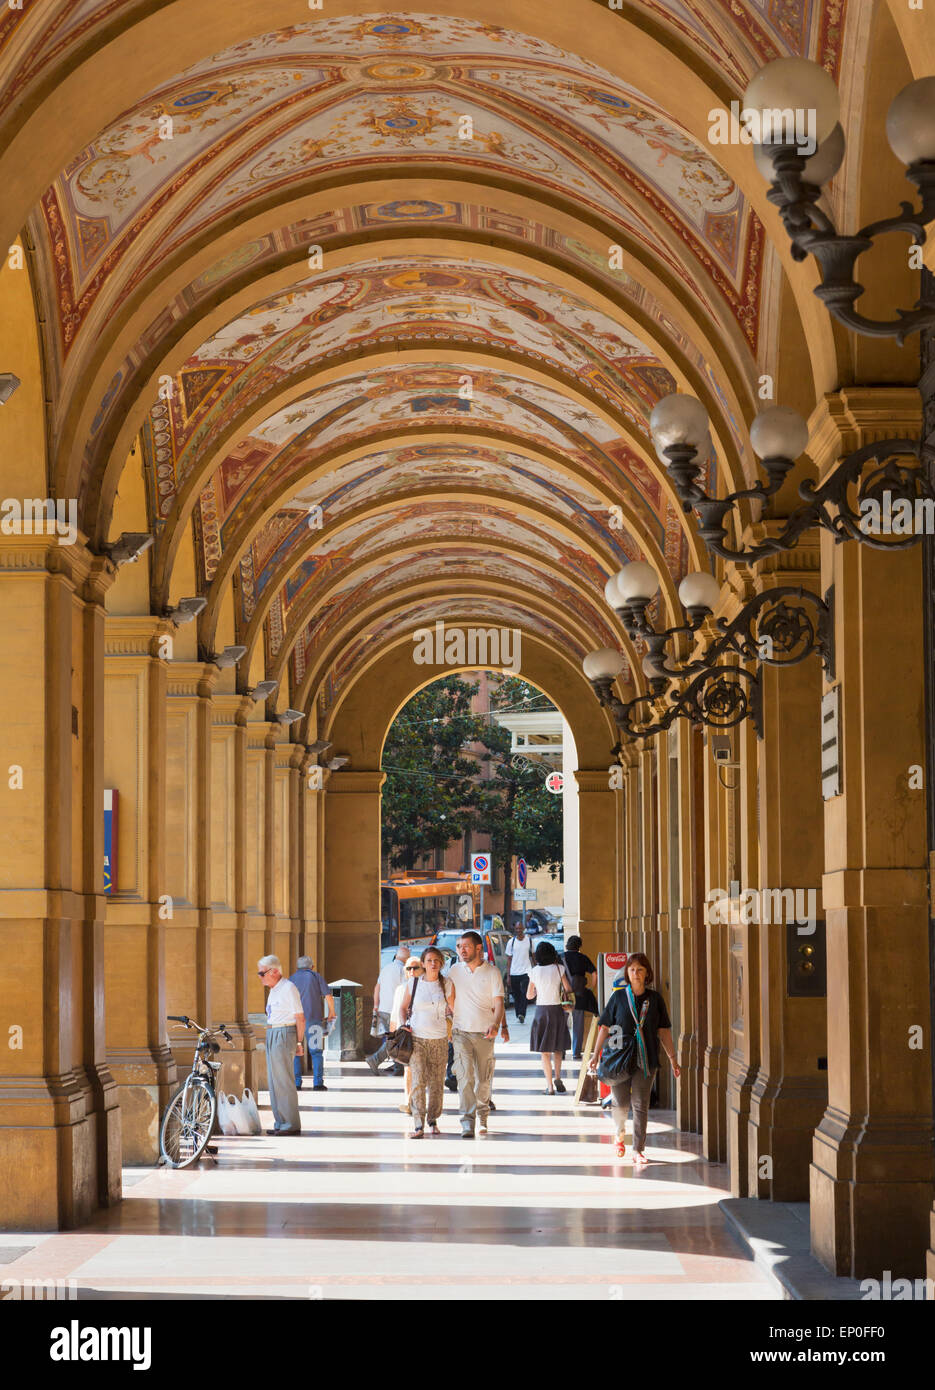 Bologna, Emilia-Romagna, Italy. The shopping arcade in Piazza Cavour. - Stock Image